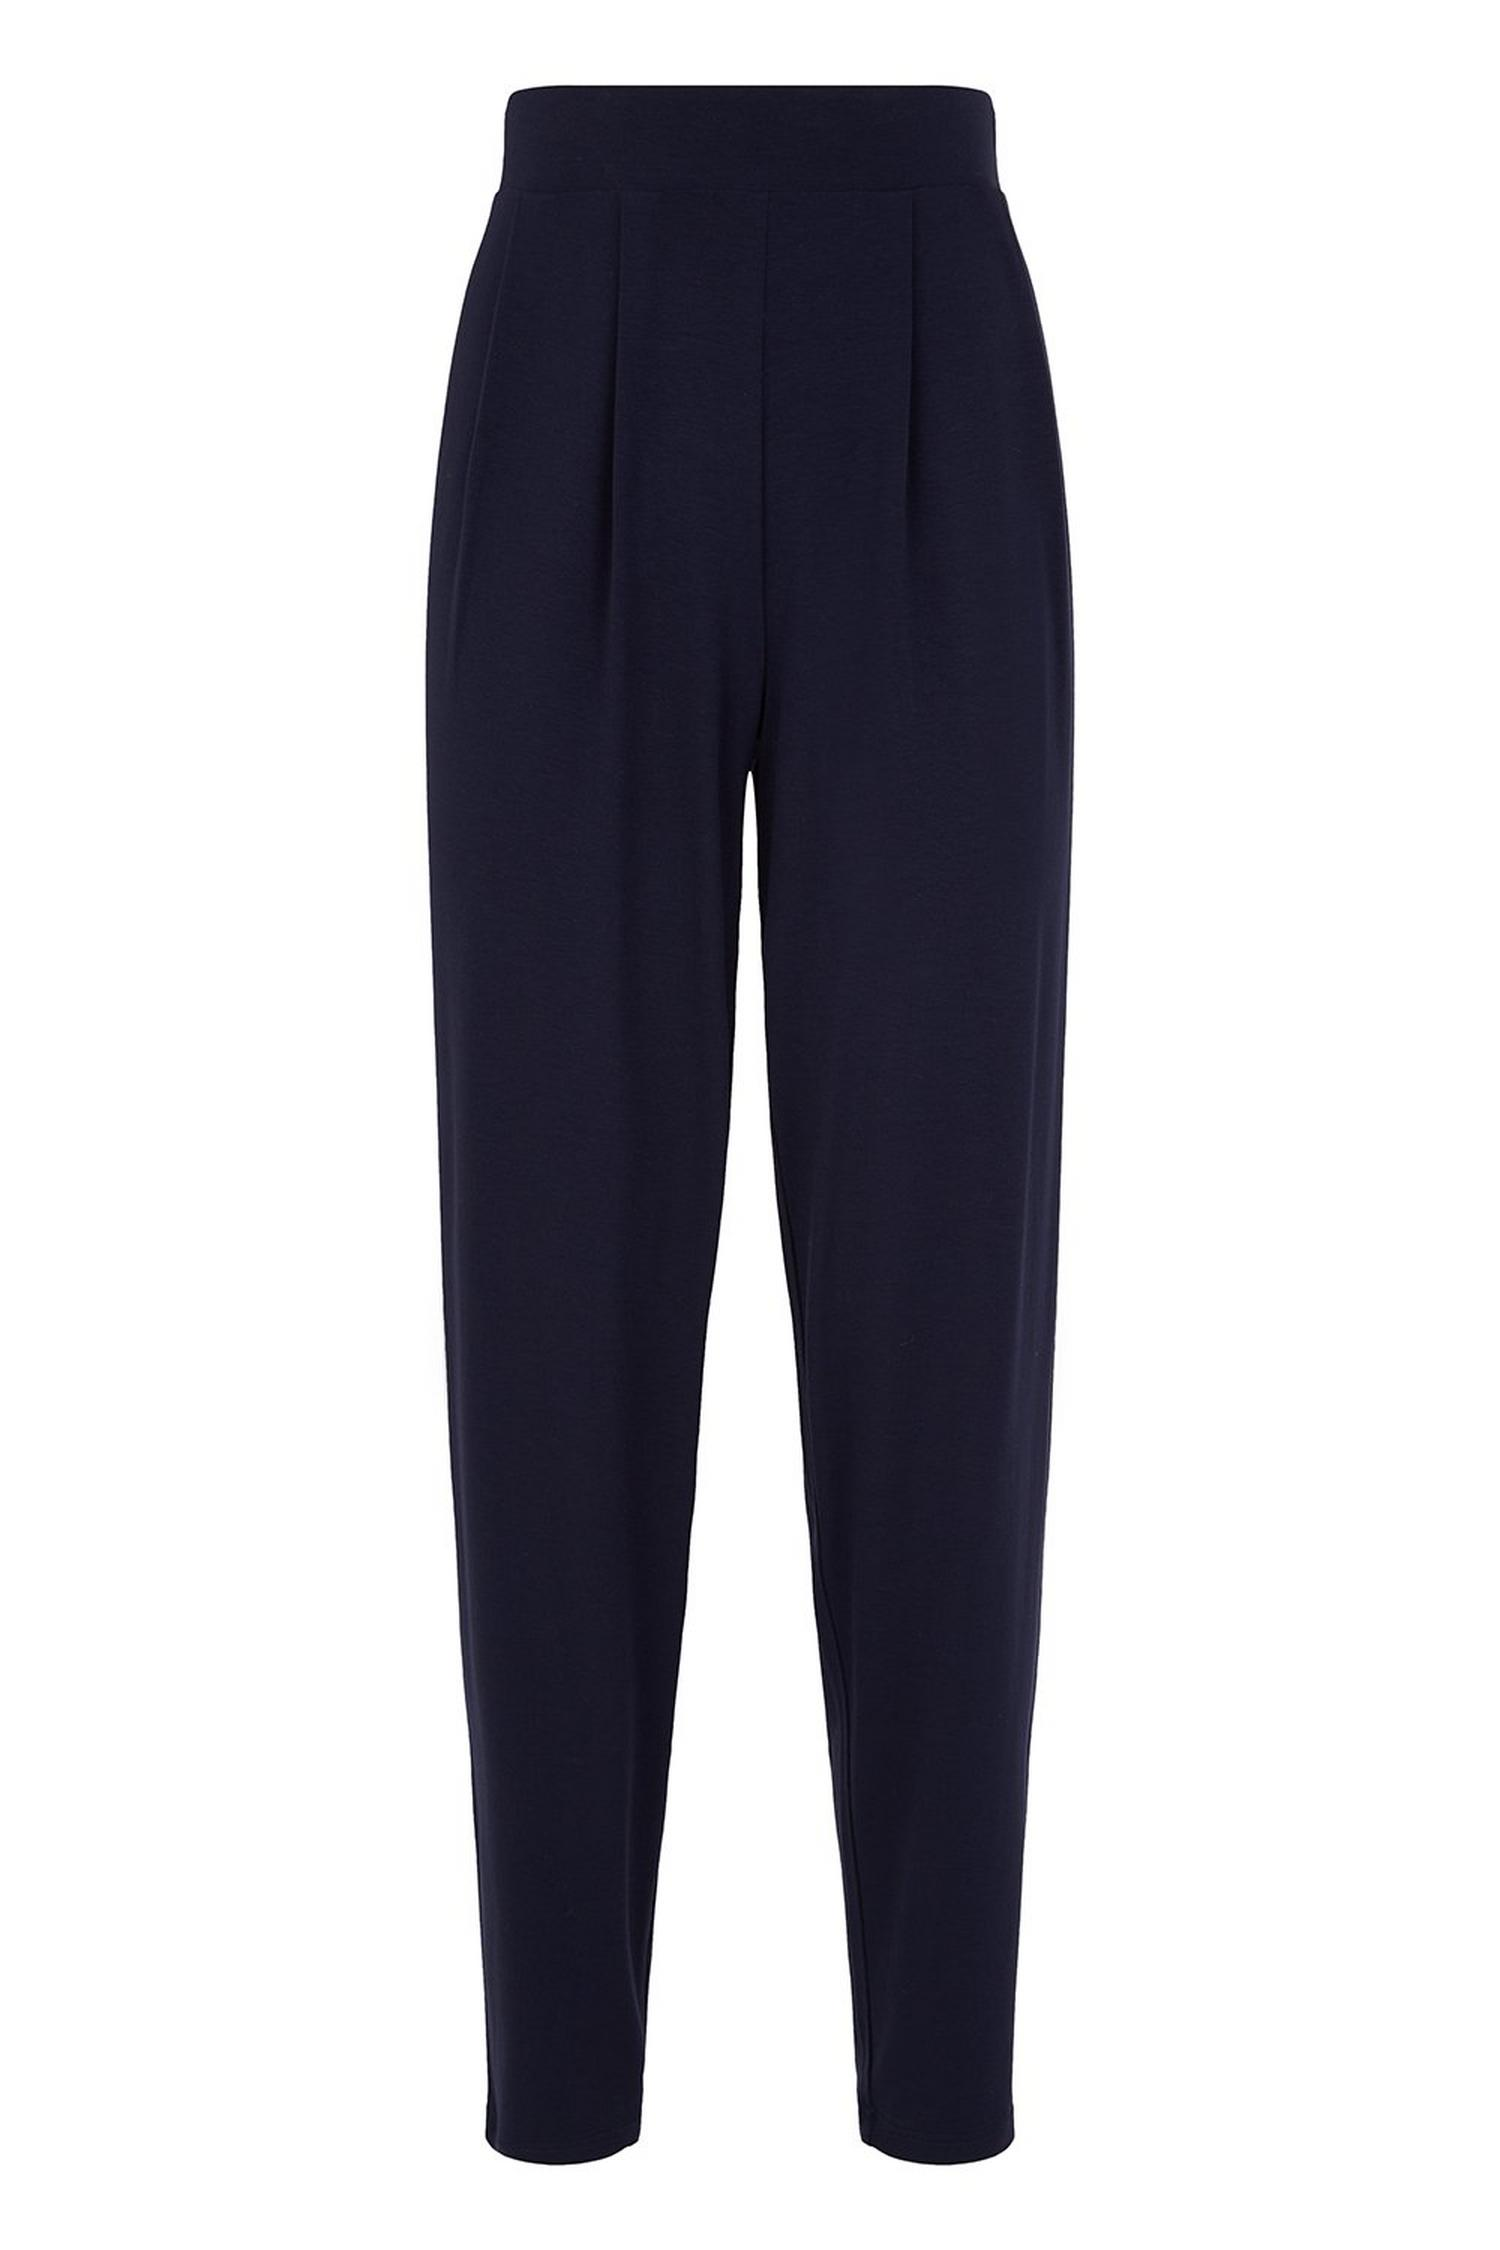 148 TALL Navy Tapered Trousers image number 2